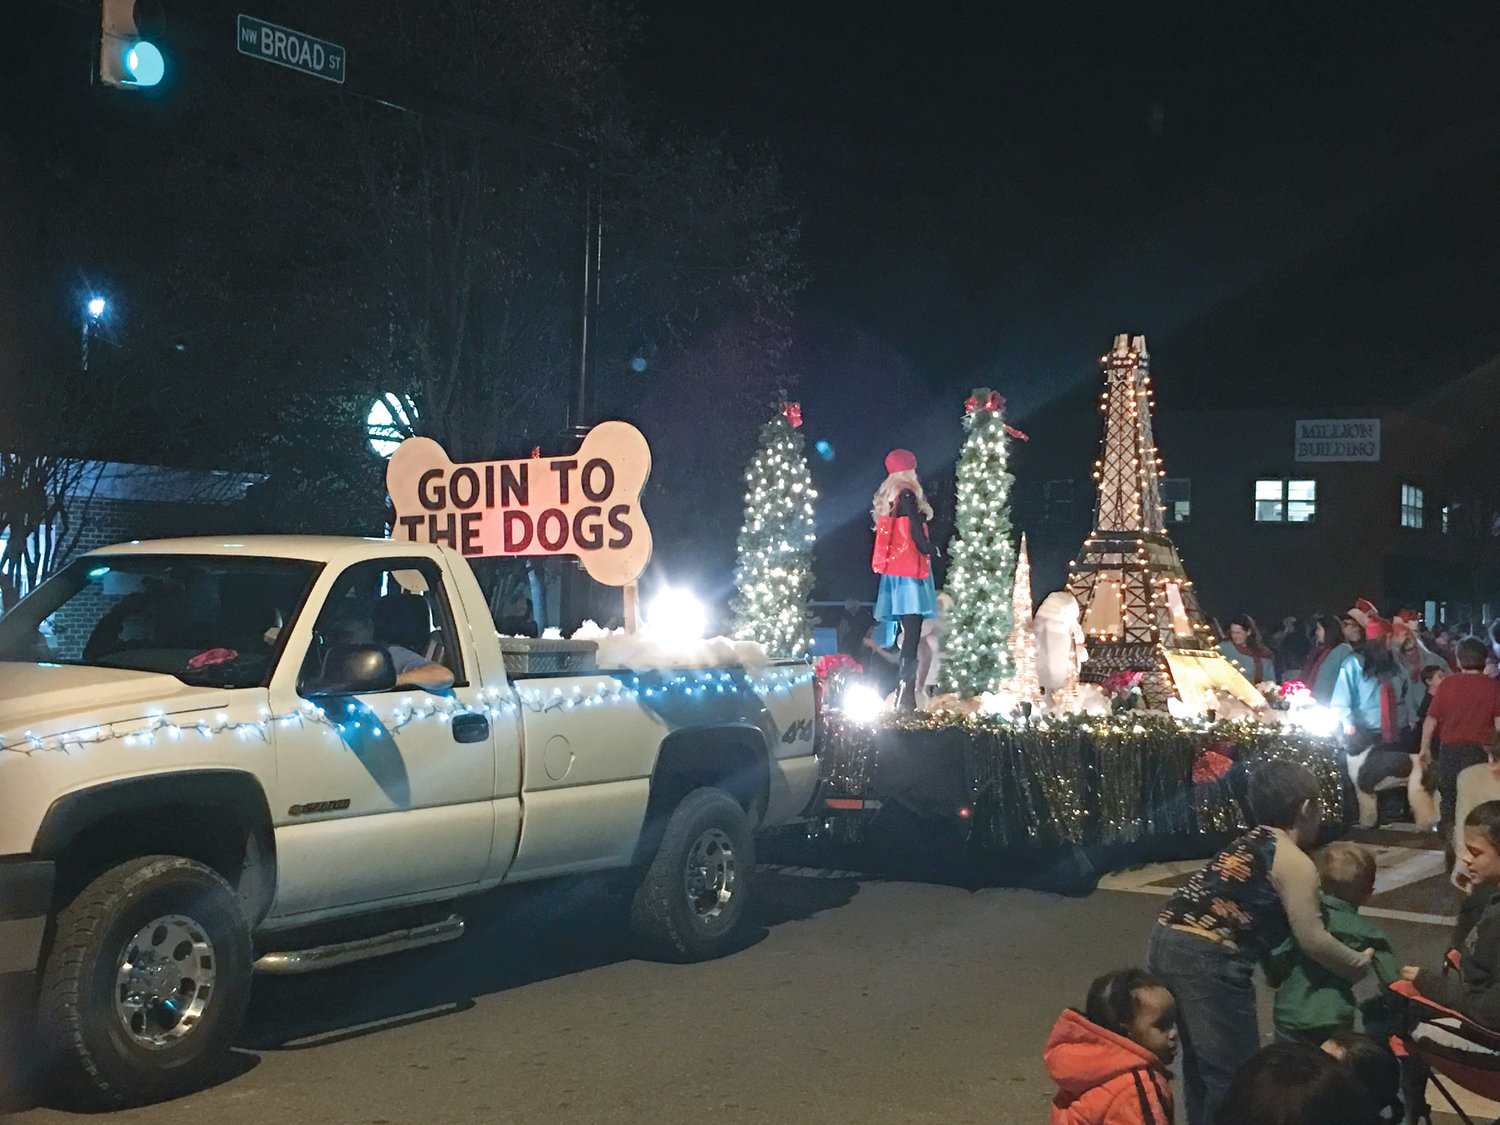 GOIN' TO THE DOGS was the winner of the Small Community Float award for the 2018 MainStreet Christmas Parade.